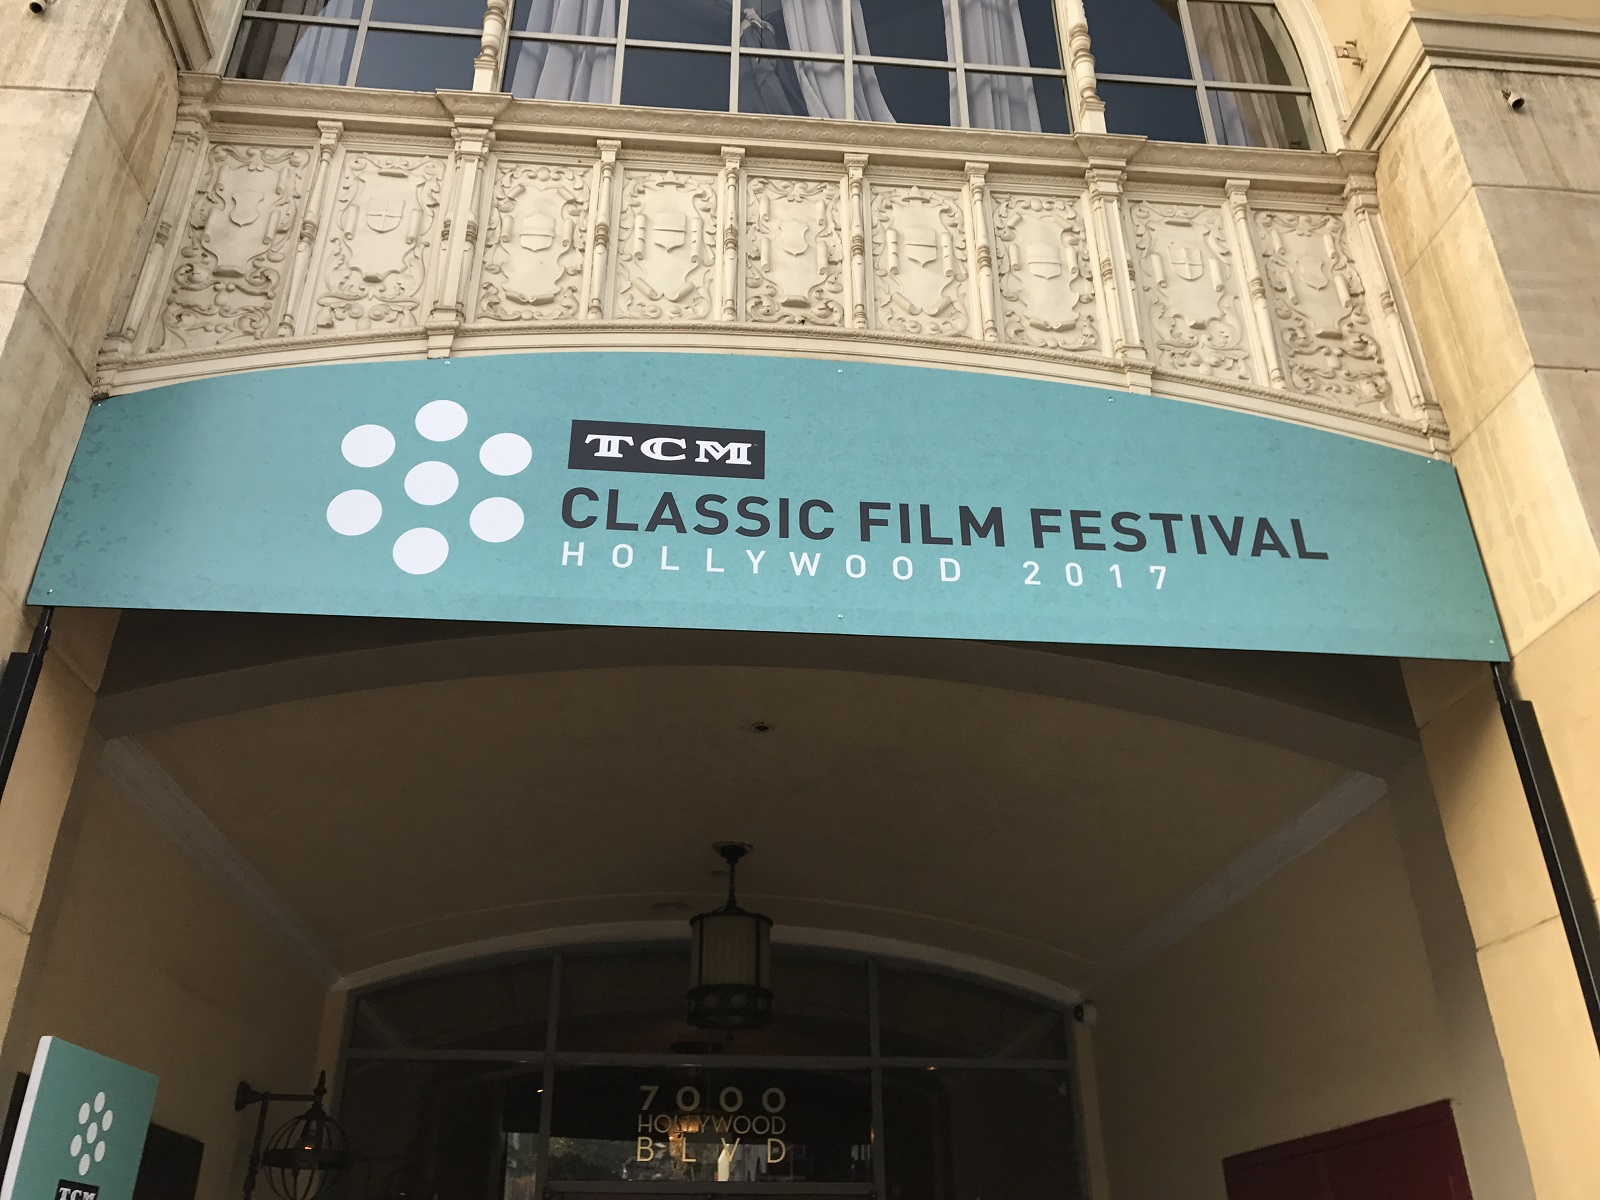 The 2017 Turner Classic Movie Festival showcased more than 80 films plus speakers and special events. (Photo by Toni Ruberto)